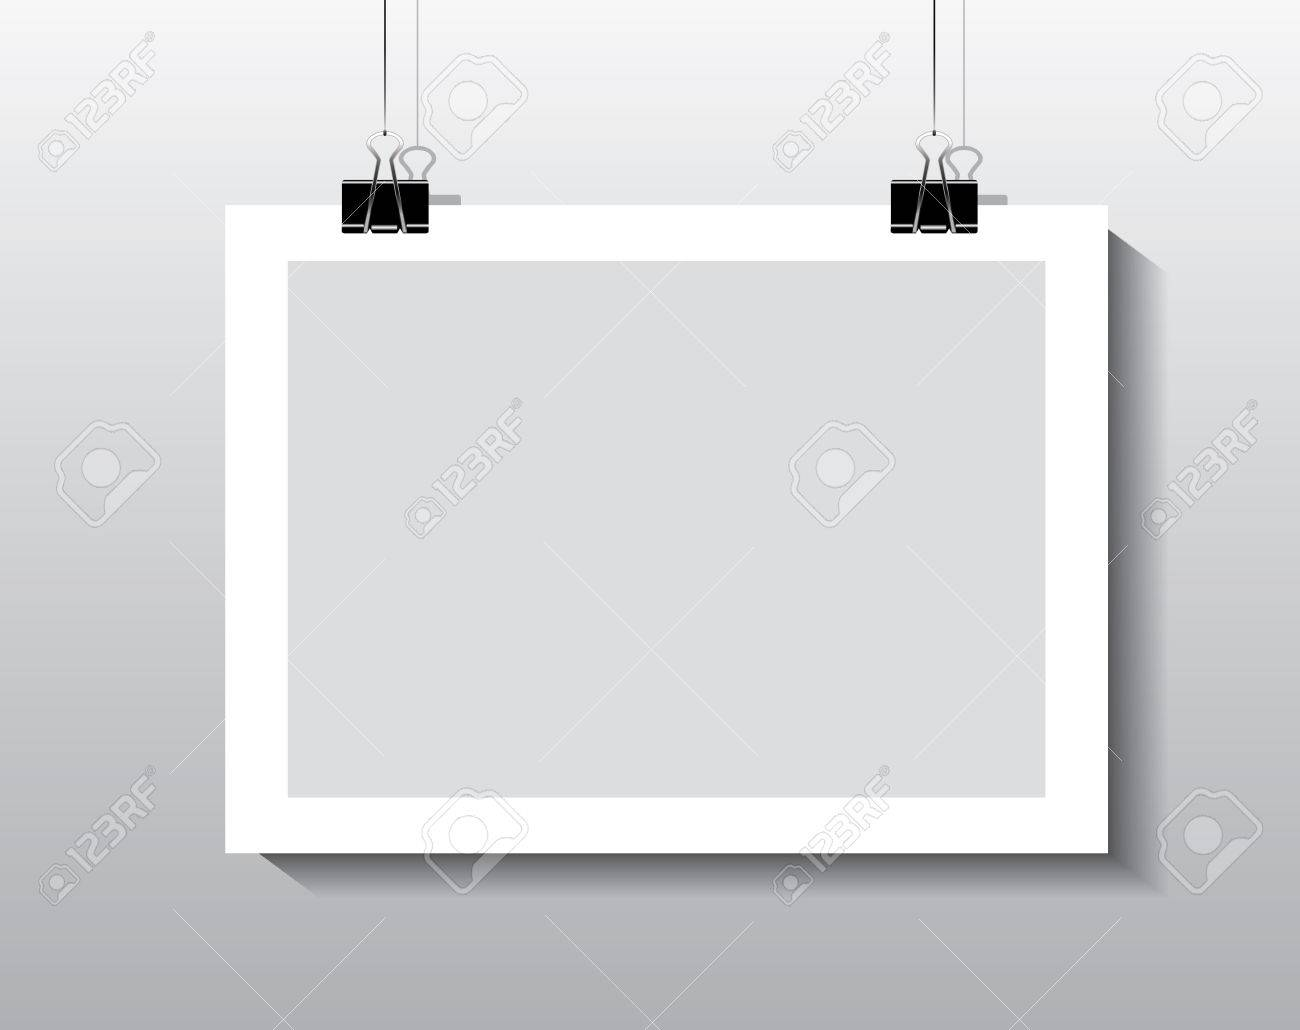 Paper Frame Hanging By Paper Clips Royalty Free Cliparts, Vectors ...